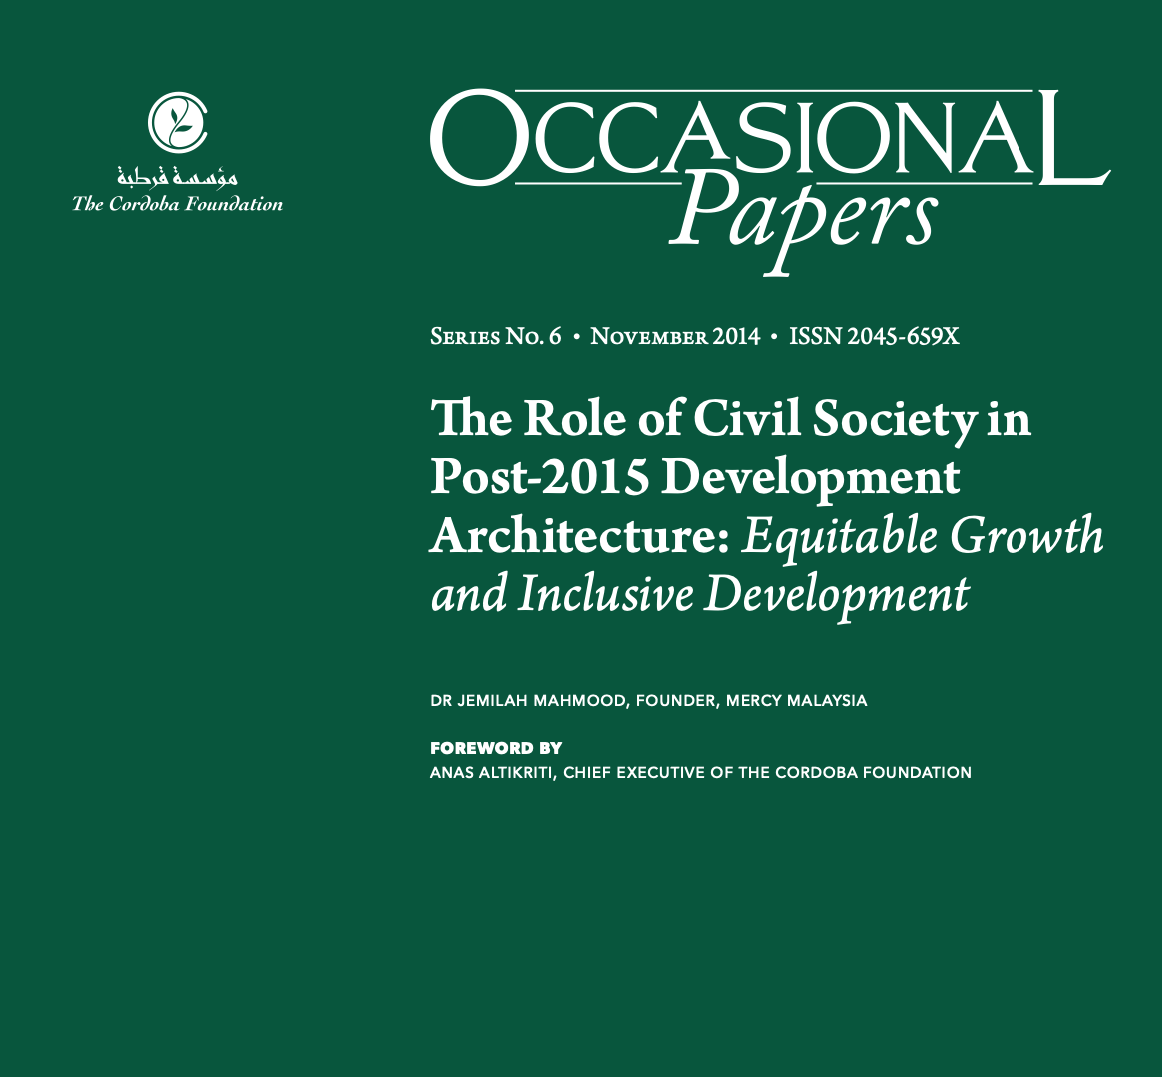 (NEW) Occasional Papers: The Role of Civil Society in Post-2015 Development Architecture